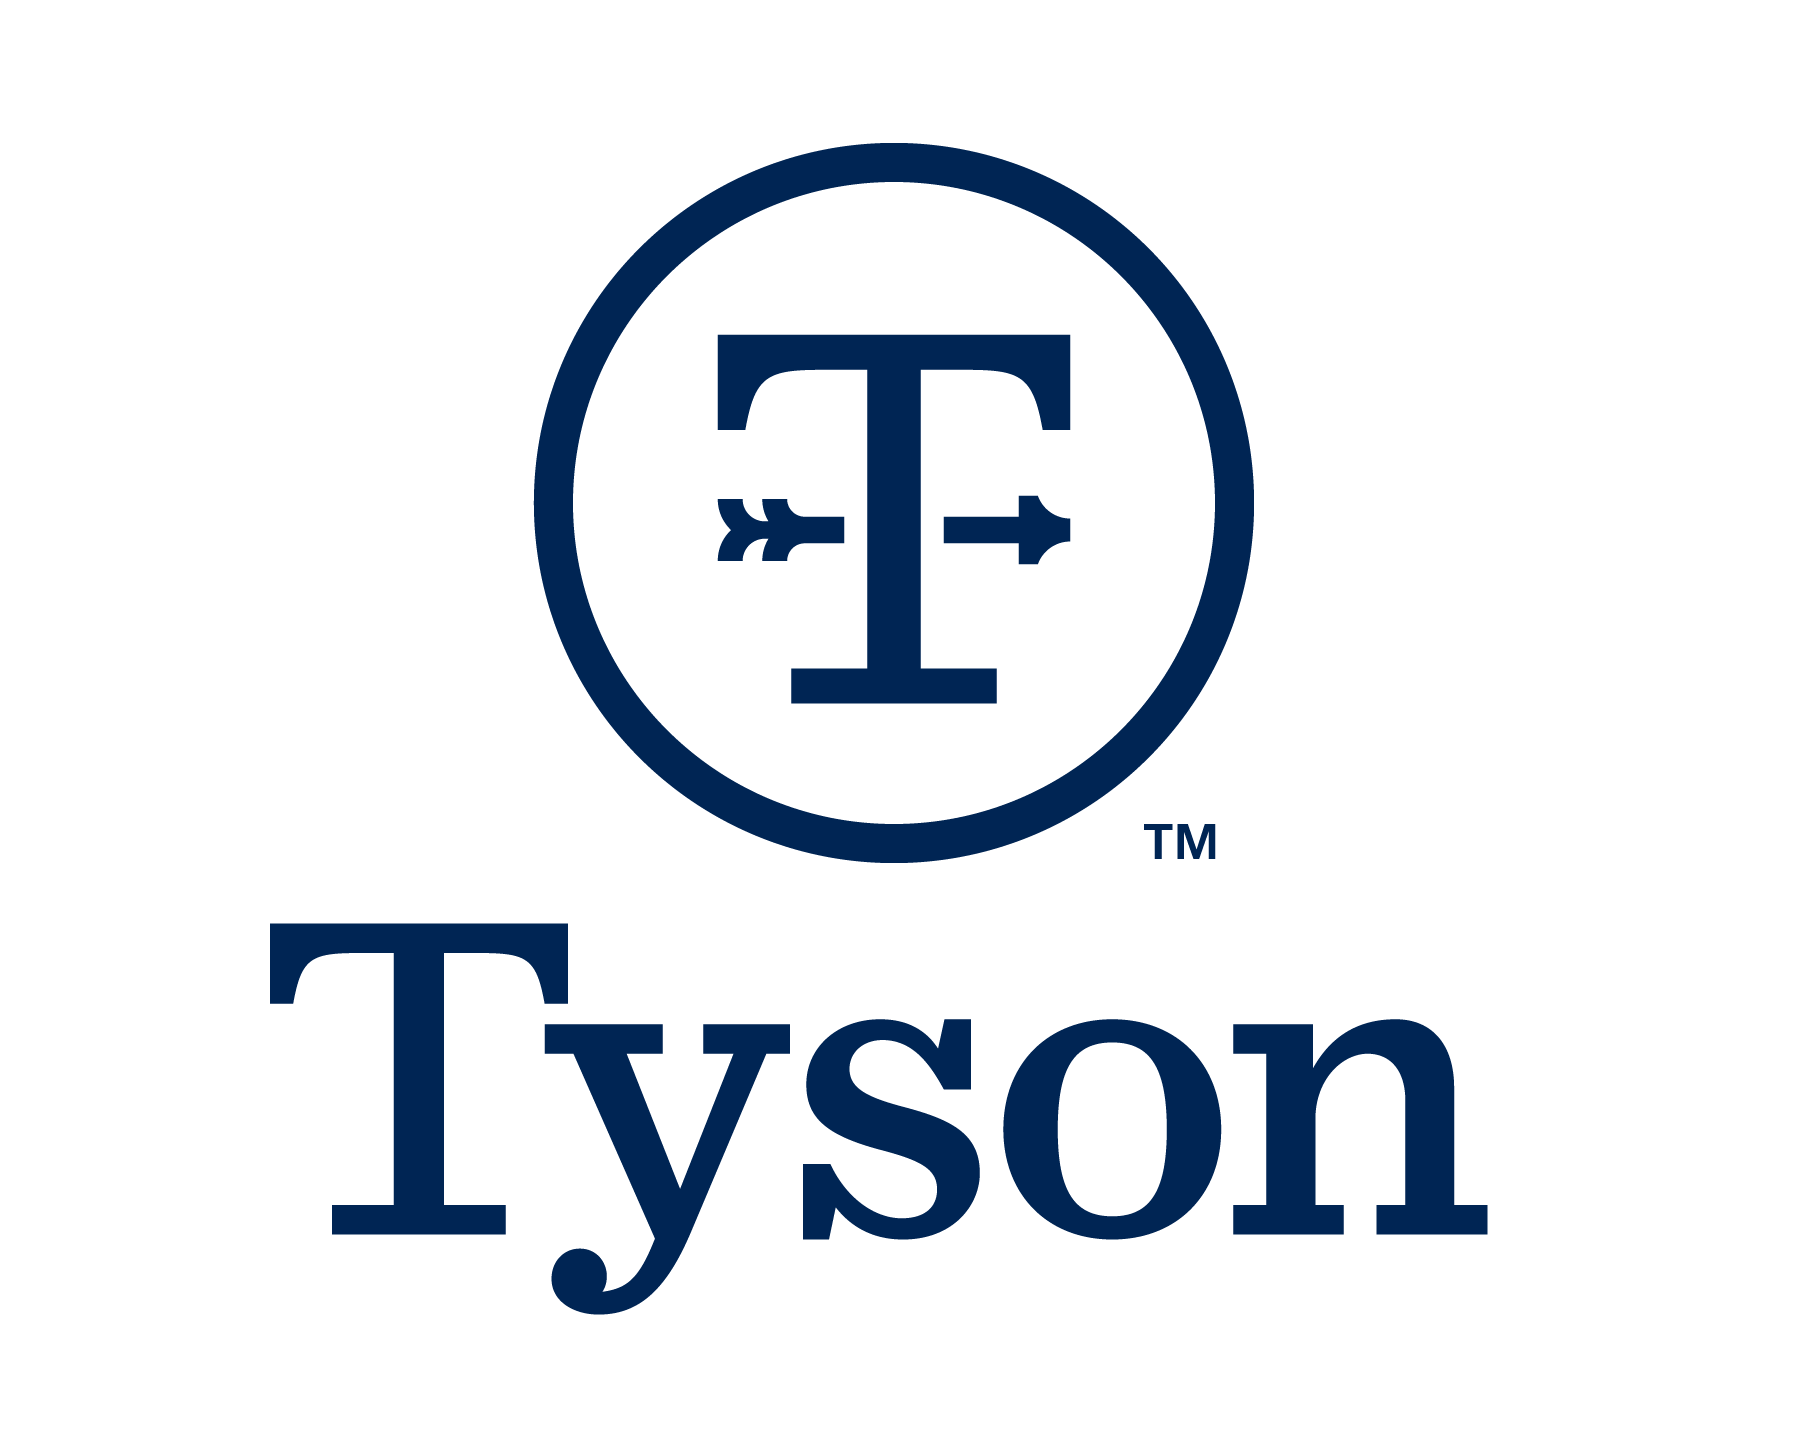 Tyson_20-png